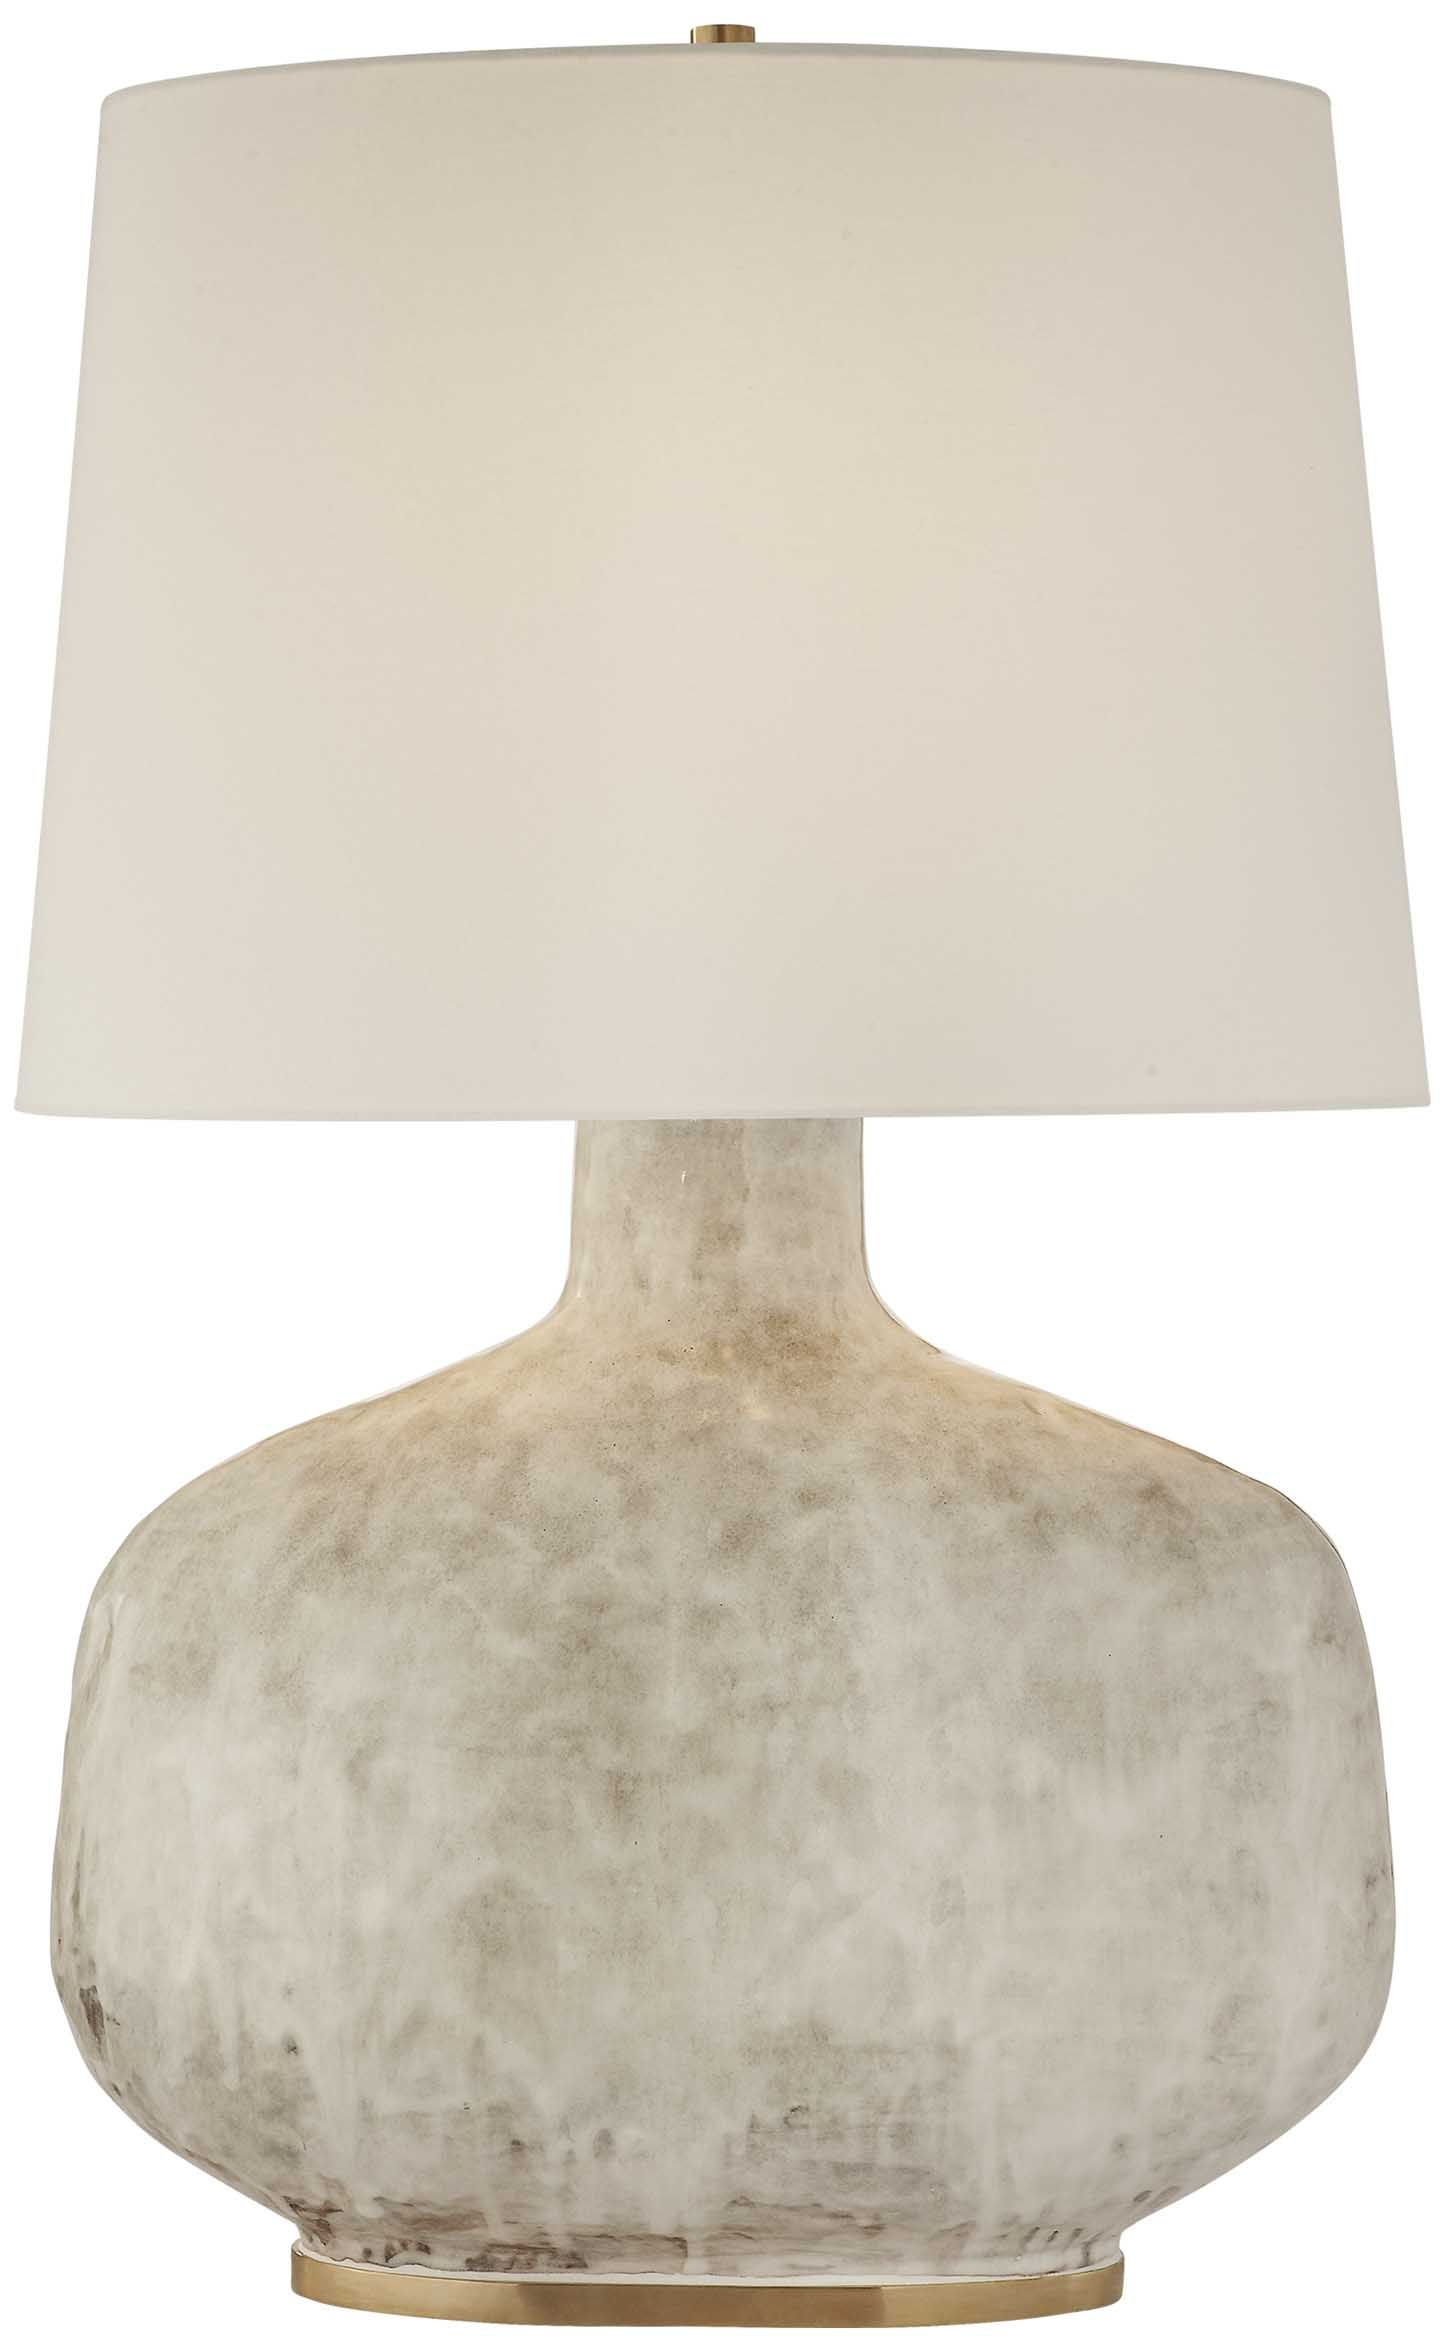 Beton Lamp Beton Table Lamp | Table Lamps | Home Lighting, Table